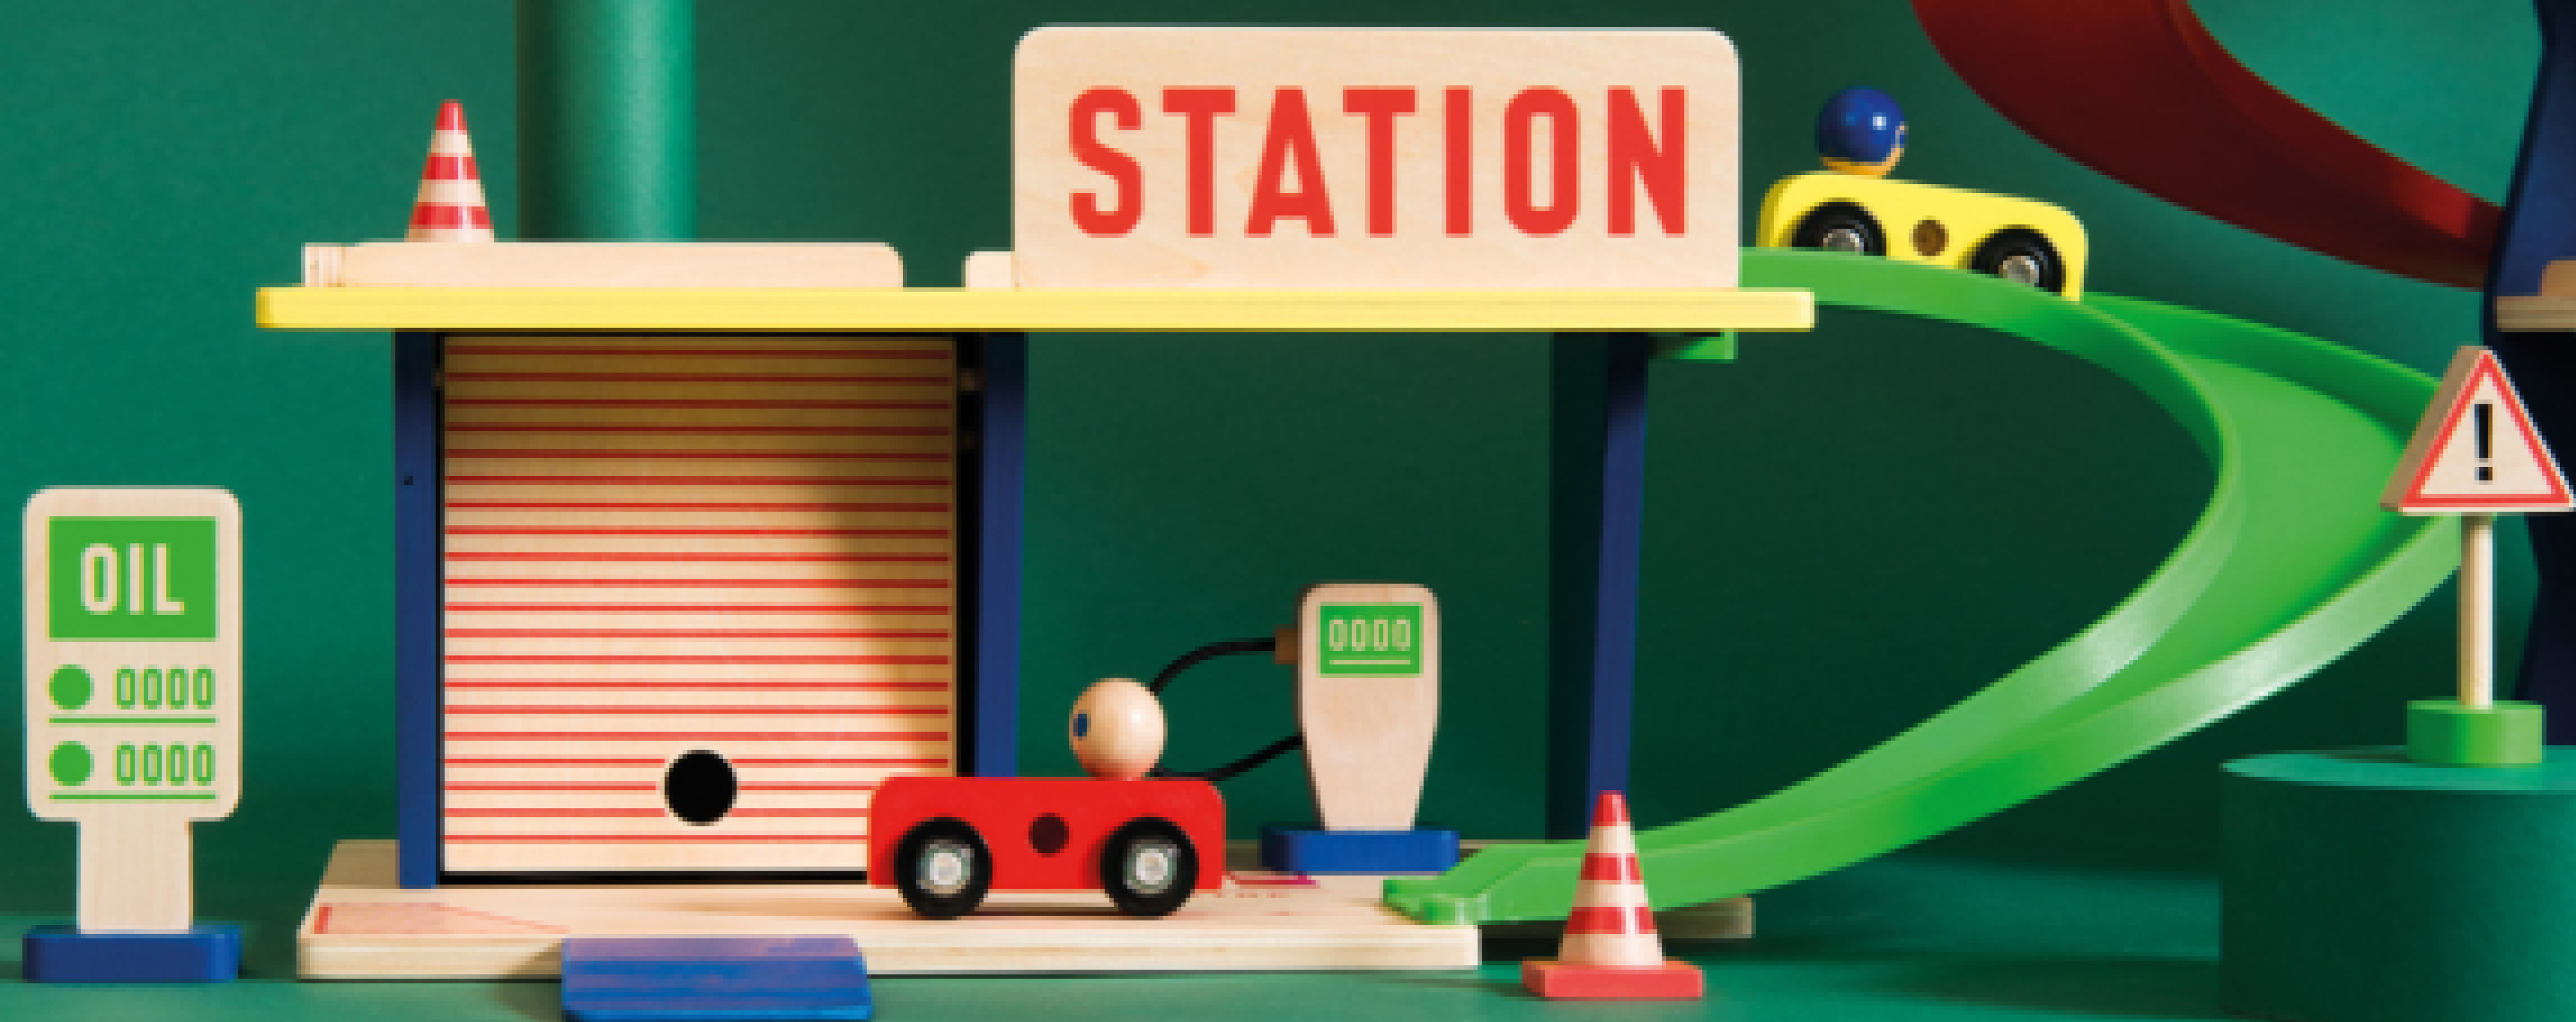 image shows a toy gas station